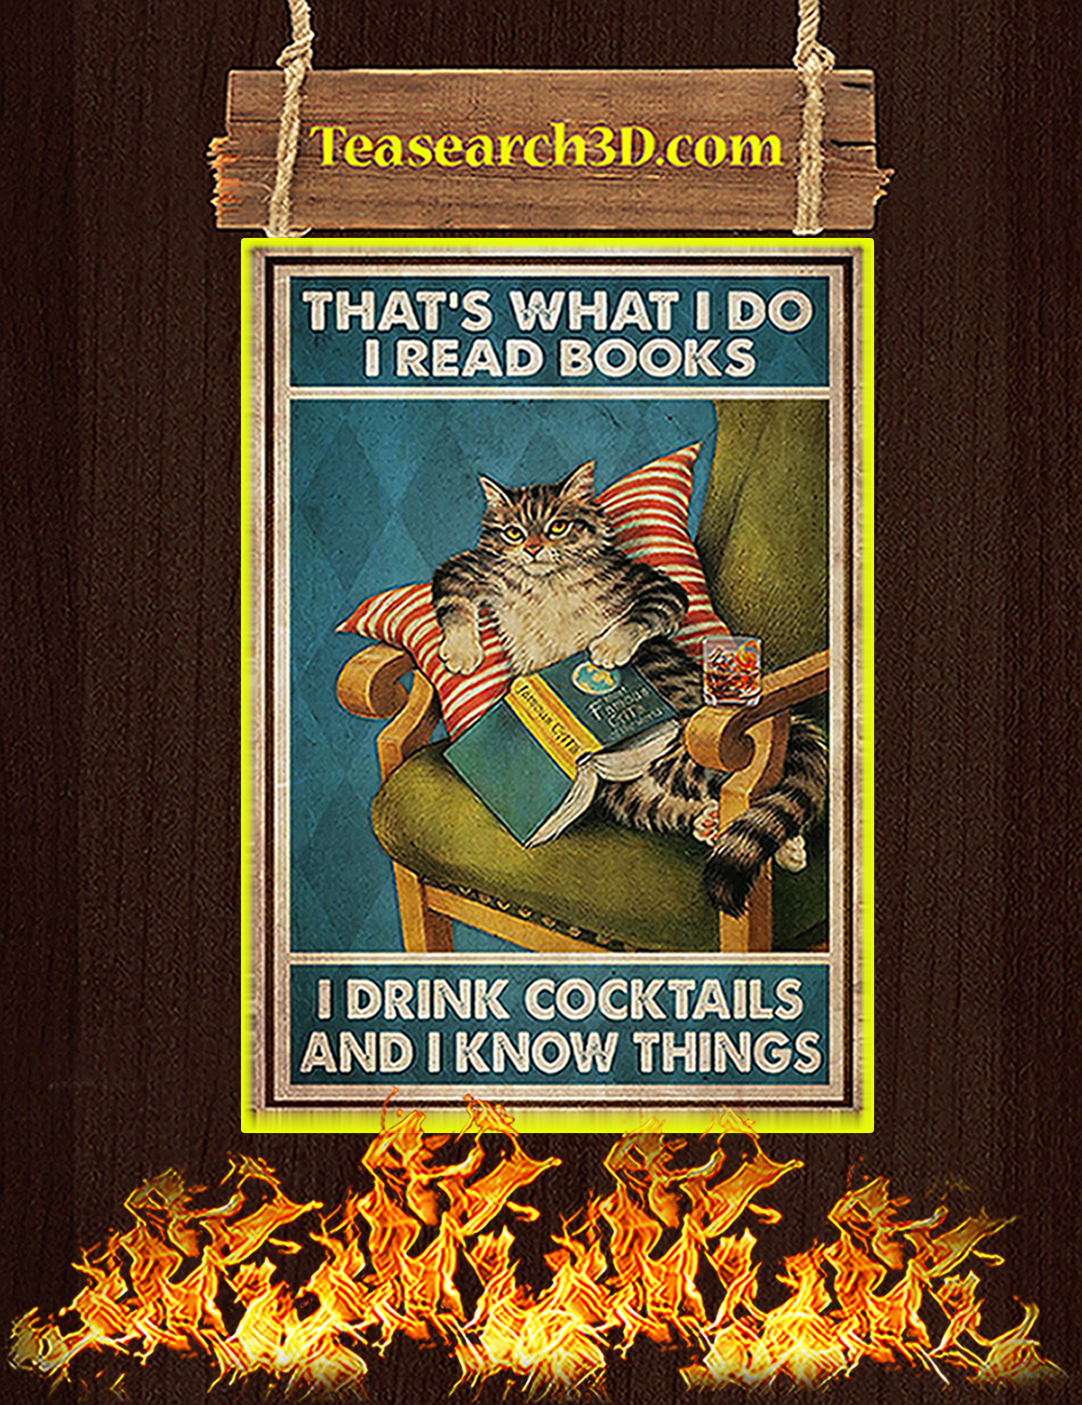 Cat That's what I do I read books I drink cocktails and I know things poster A2